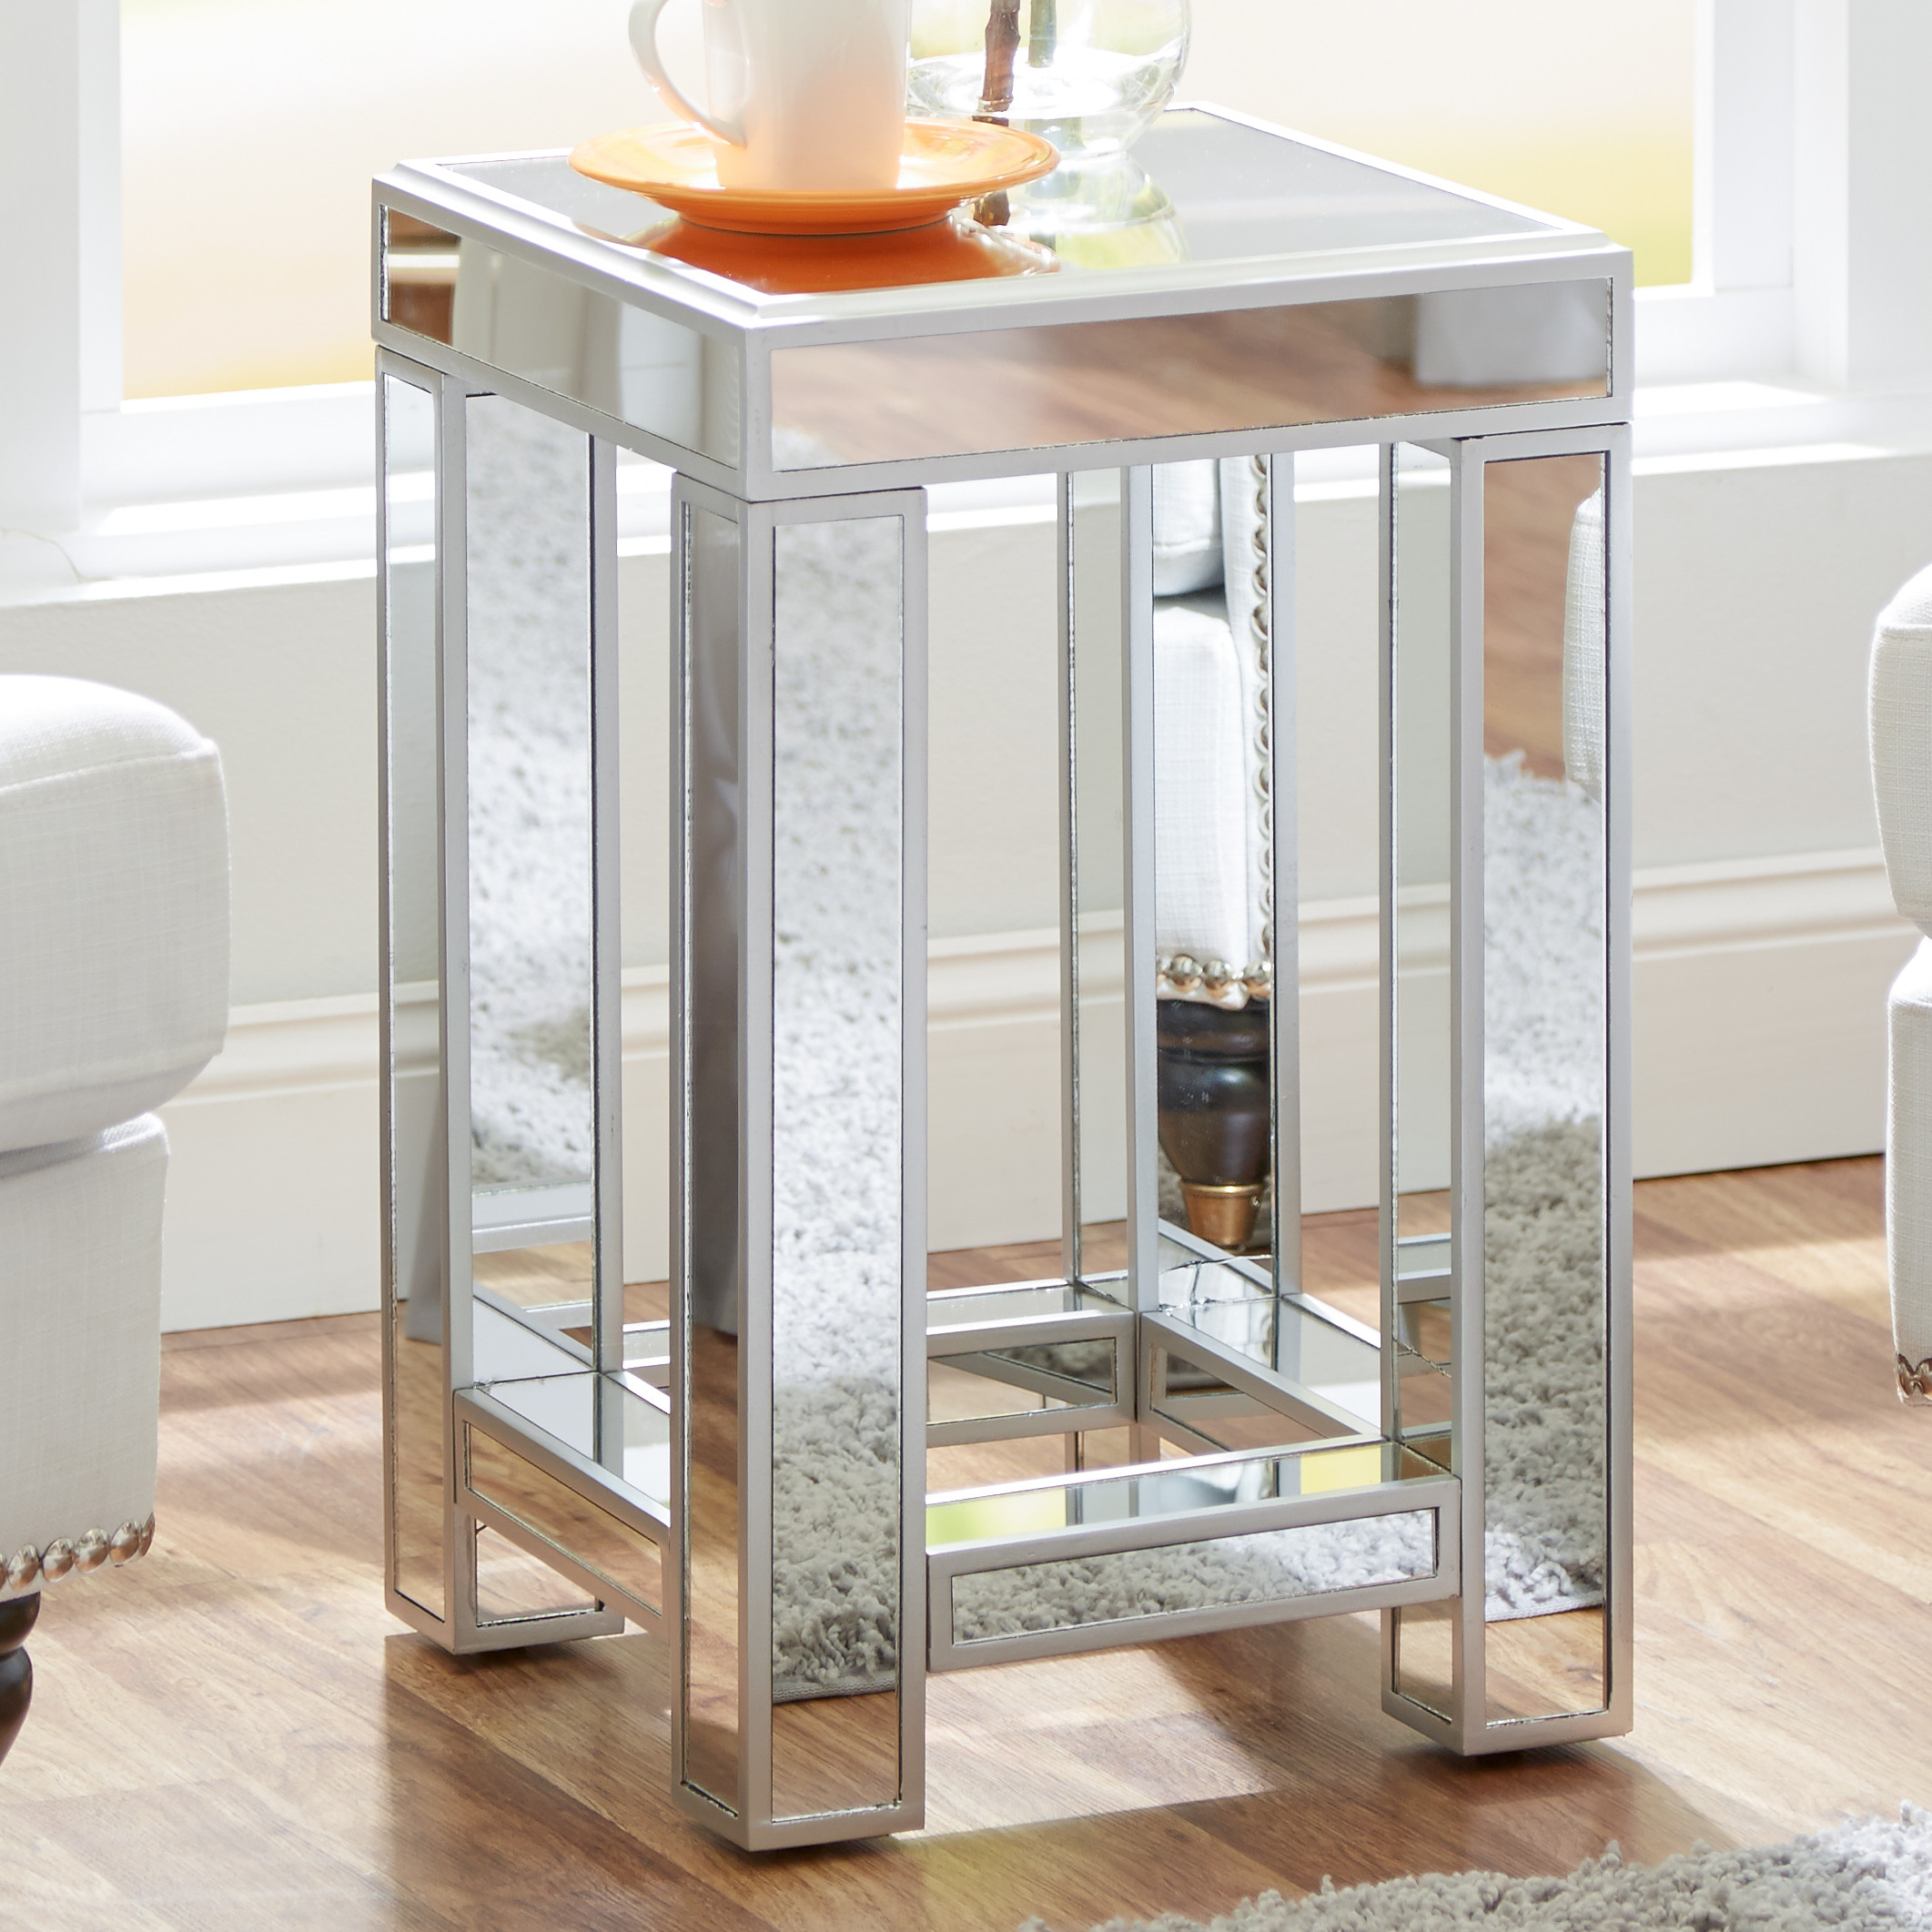 hotxpress nightstand pascual coffee table bedside mirrored side end with drawer pedestal lucite cocktai inch furniture tables mirror nightstands wide black tall wooden accent